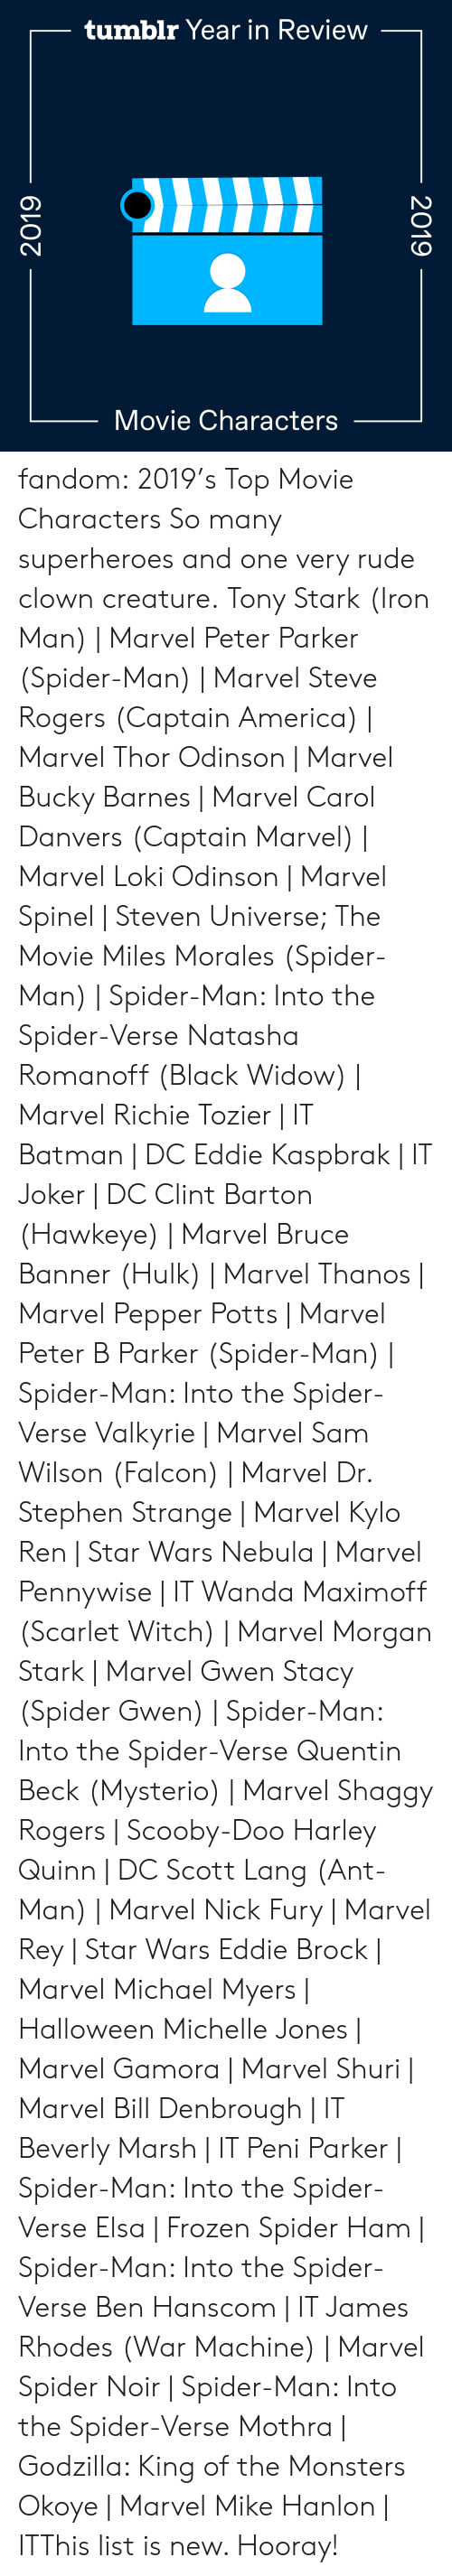 Search: tumblr Year in Review  Movie Characters  2019  2019 fandom:  2019's Top Movie Characters  So many superheroes and one very rude clown creature.  Tony Stark (Iron Man) | Marvel  Peter Parker (Spider-Man) | Marvel  Steve Rogers (Captain America) | Marvel  Thor Odinson | Marvel  Bucky Barnes | Marvel  Carol Danvers (Captain Marvel) | Marvel  Loki Odinson | Marvel  Spinel | Steven Universe; The Movie  Miles Morales (Spider-Man) | Spider-Man: Into the Spider-Verse  Natasha Romanoff (Black Widow) | Marvel  Richie Tozier | IT  Batman | DC  Eddie Kaspbrak | IT  Joker | DC  Clint Barton (Hawkeye) | Marvel  Bruce Banner (Hulk) | Marvel  Thanos | Marvel  Pepper Potts | Marvel  Peter B Parker (Spider-Man) | Spider-Man: Into the Spider-Verse  Valkyrie | Marvel  Sam Wilson (Falcon) | Marvel  Dr. Stephen Strange | Marvel  Kylo Ren | Star Wars  Nebula | Marvel  Pennywise | IT  Wanda Maximoff (Scarlet Witch) | Marvel  Morgan Stark | Marvel  Gwen Stacy (Spider Gwen) | Spider-Man: Into the Spider-Verse  Quentin Beck (Mysterio) | Marvel  Shaggy Rogers | Scooby-Doo  Harley Quinn | DC  Scott Lang (Ant-Man) | Marvel  Nick Fury | Marvel  Rey | Star Wars  Eddie Brock | Marvel  Michael Myers | Halloween  Michelle Jones | Marvel  Gamora | Marvel  Shuri | Marvel  Bill Denbrough | IT  Beverly Marsh | IT  Peni Parker | Spider-Man: Into the Spider-Verse  Elsa | Frozen  Spider Ham | Spider-Man: Into the Spider-Verse  Ben Hanscom | IT  James Rhodes (War Machine) | Marvel  Spider Noir | Spider-Man: Into the Spider-Verse  Mothra | Godzilla: King of the Monsters  Okoye | Marvel Mike Hanlon | ITThis list is new. Hooray!